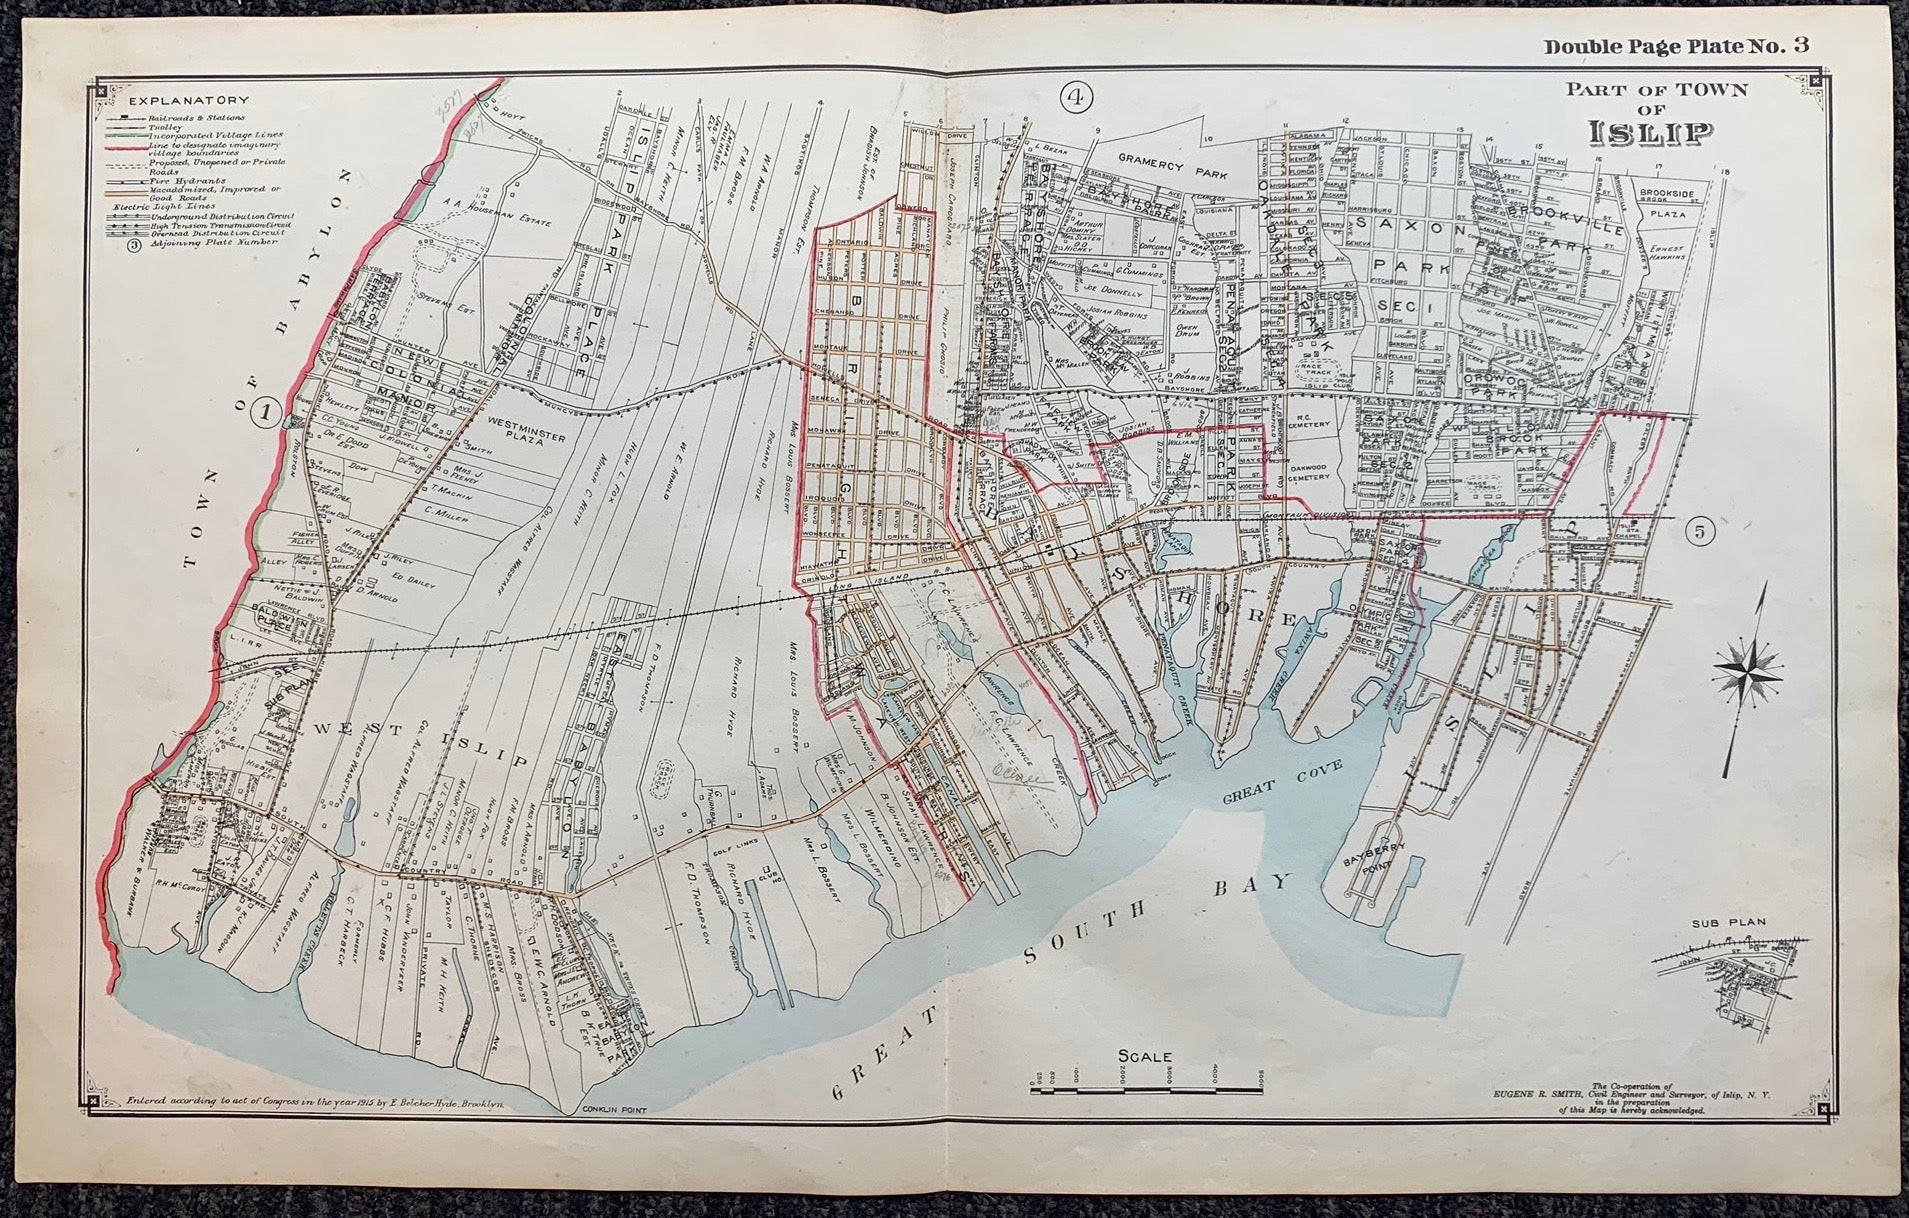 Long Island Index Map No.2 - Plate 3 Islip